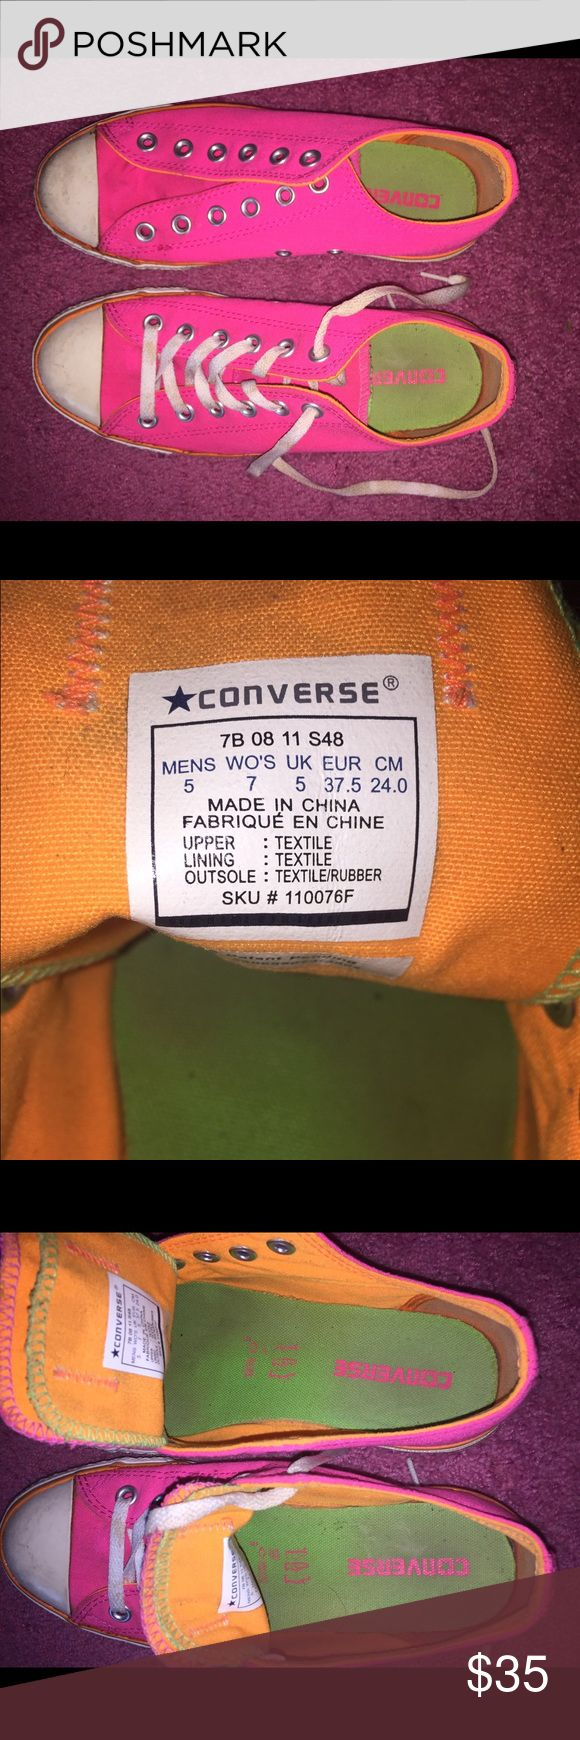 Neon Converse Chuck Taylor All Stars Reposted. Never worn by me. Can wash before selling. Great condition. Only one shoelace! Converse Shoes Sneakers